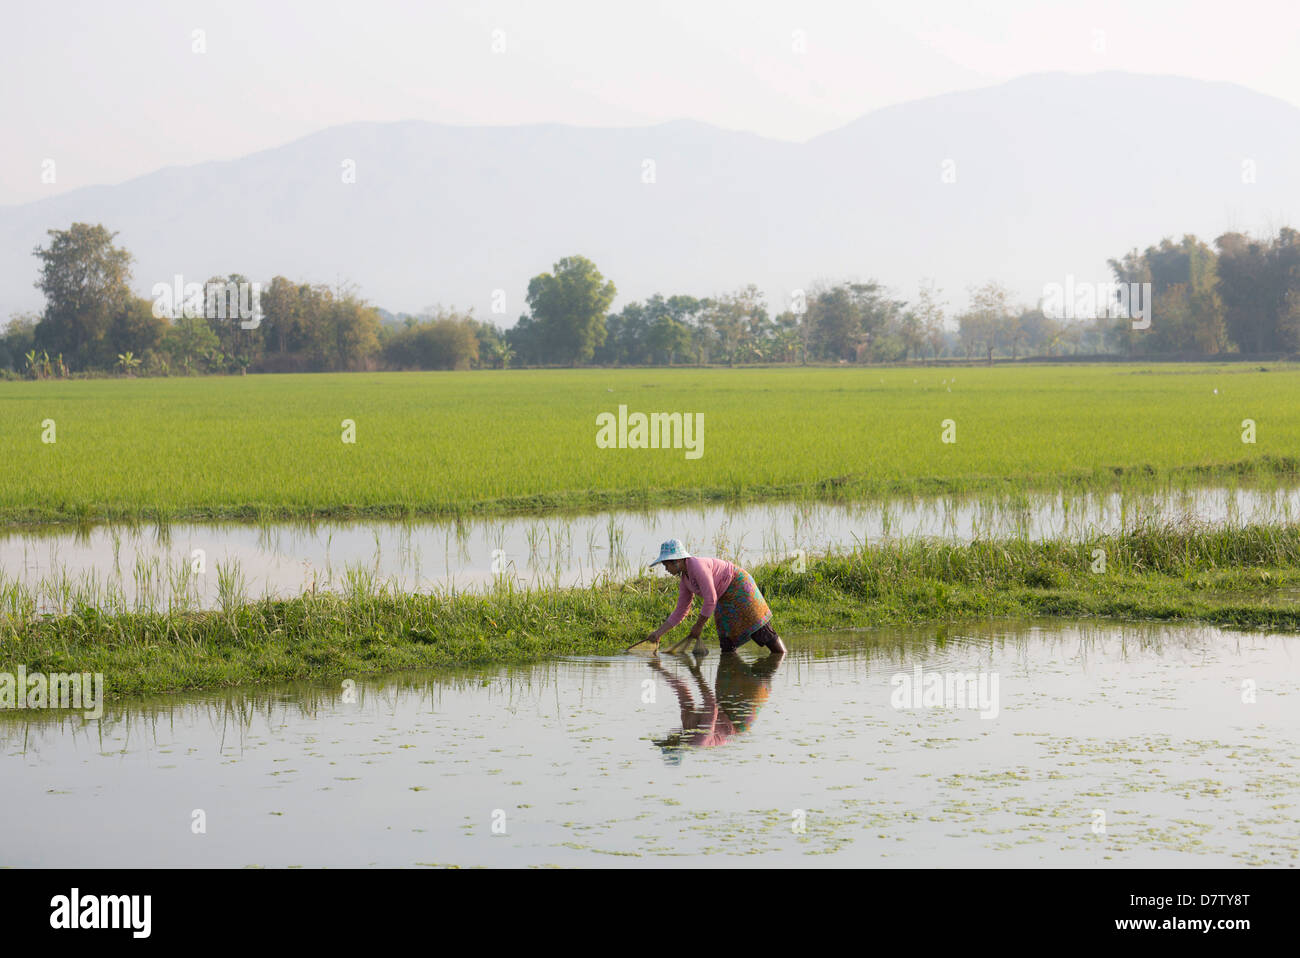 Woman working in paddy fields near Kengtung (Kyaingtong), Shan State, Burma - Stock Image